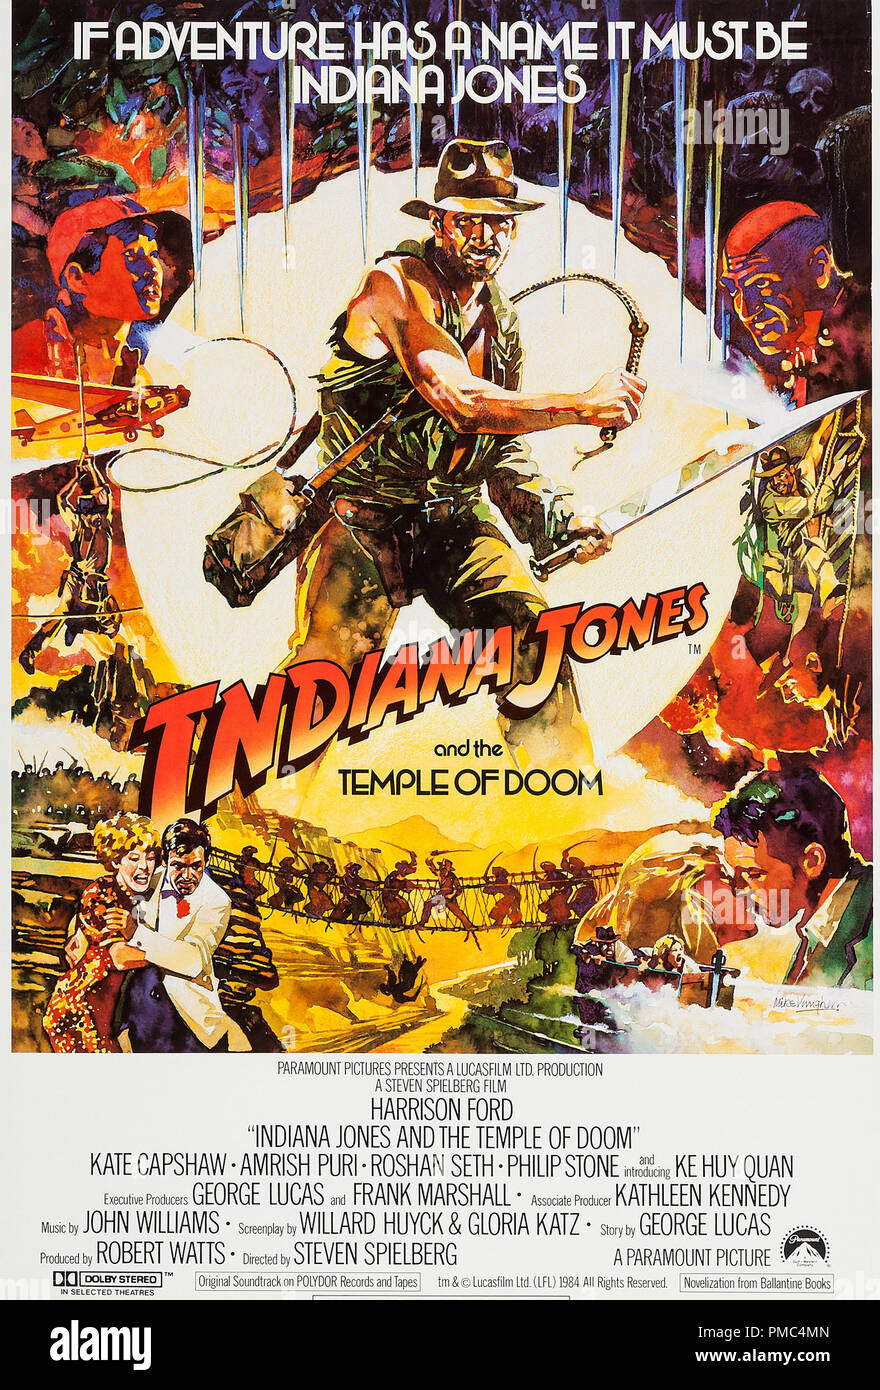 https www alamy com harrison ford indiana jones and the temple of doom paramount 1984 british poster file reference 33595 876tha image219084677 html